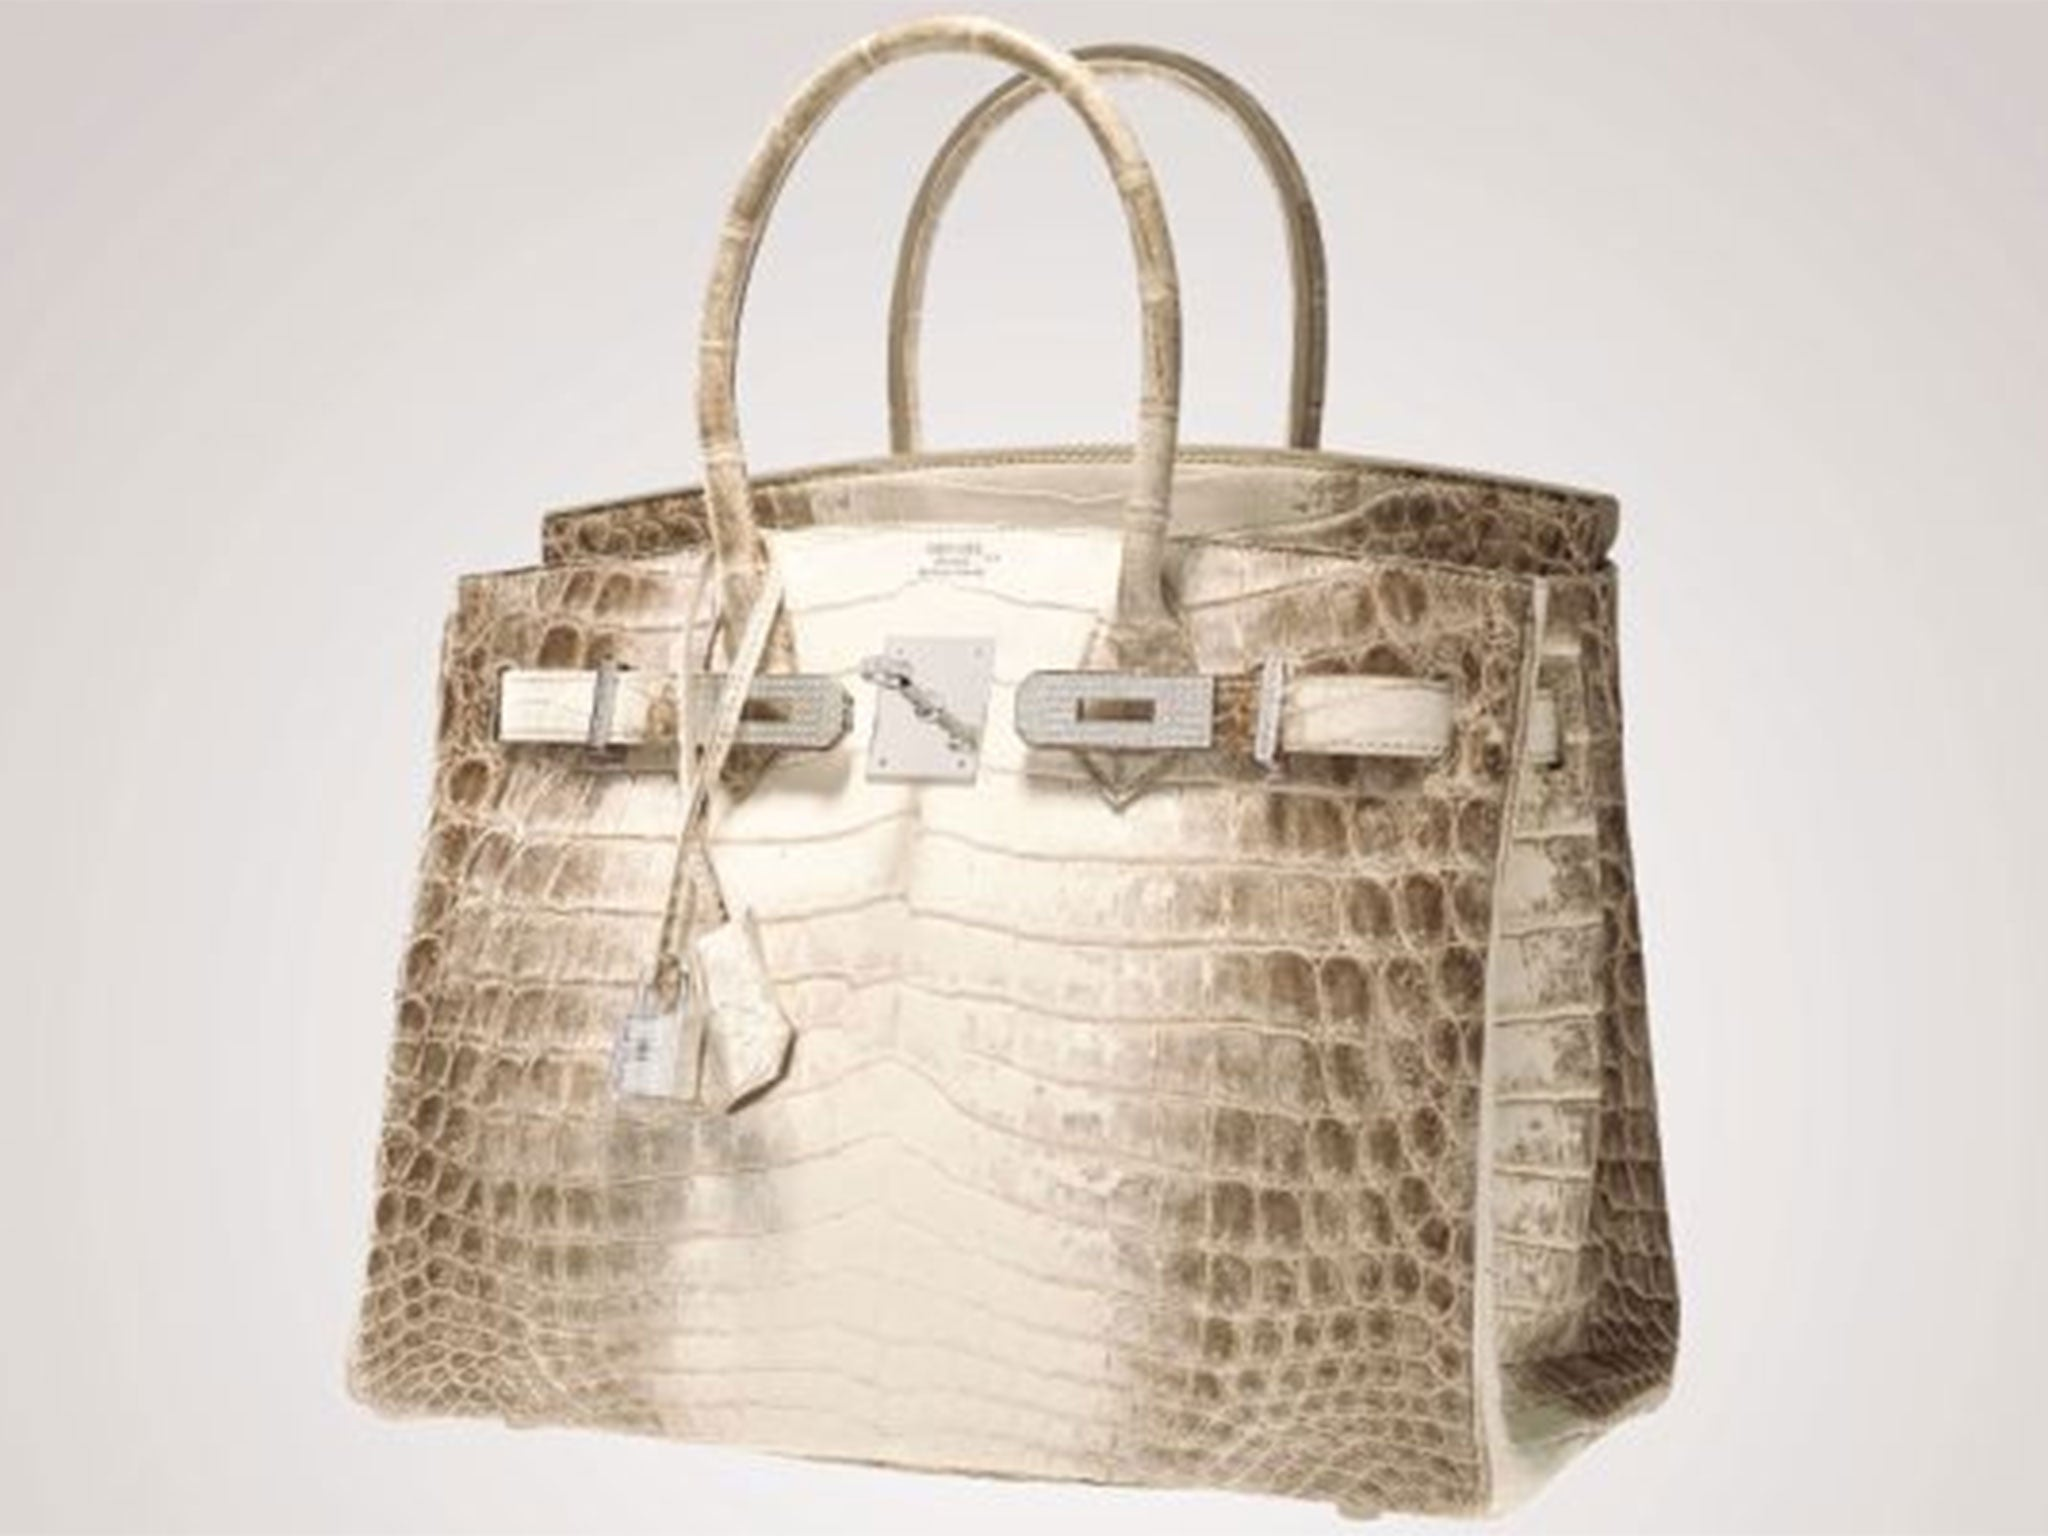 It s better to invest in a Hermes  Birkin bag than in gold or the ... 3304accf9d0b0